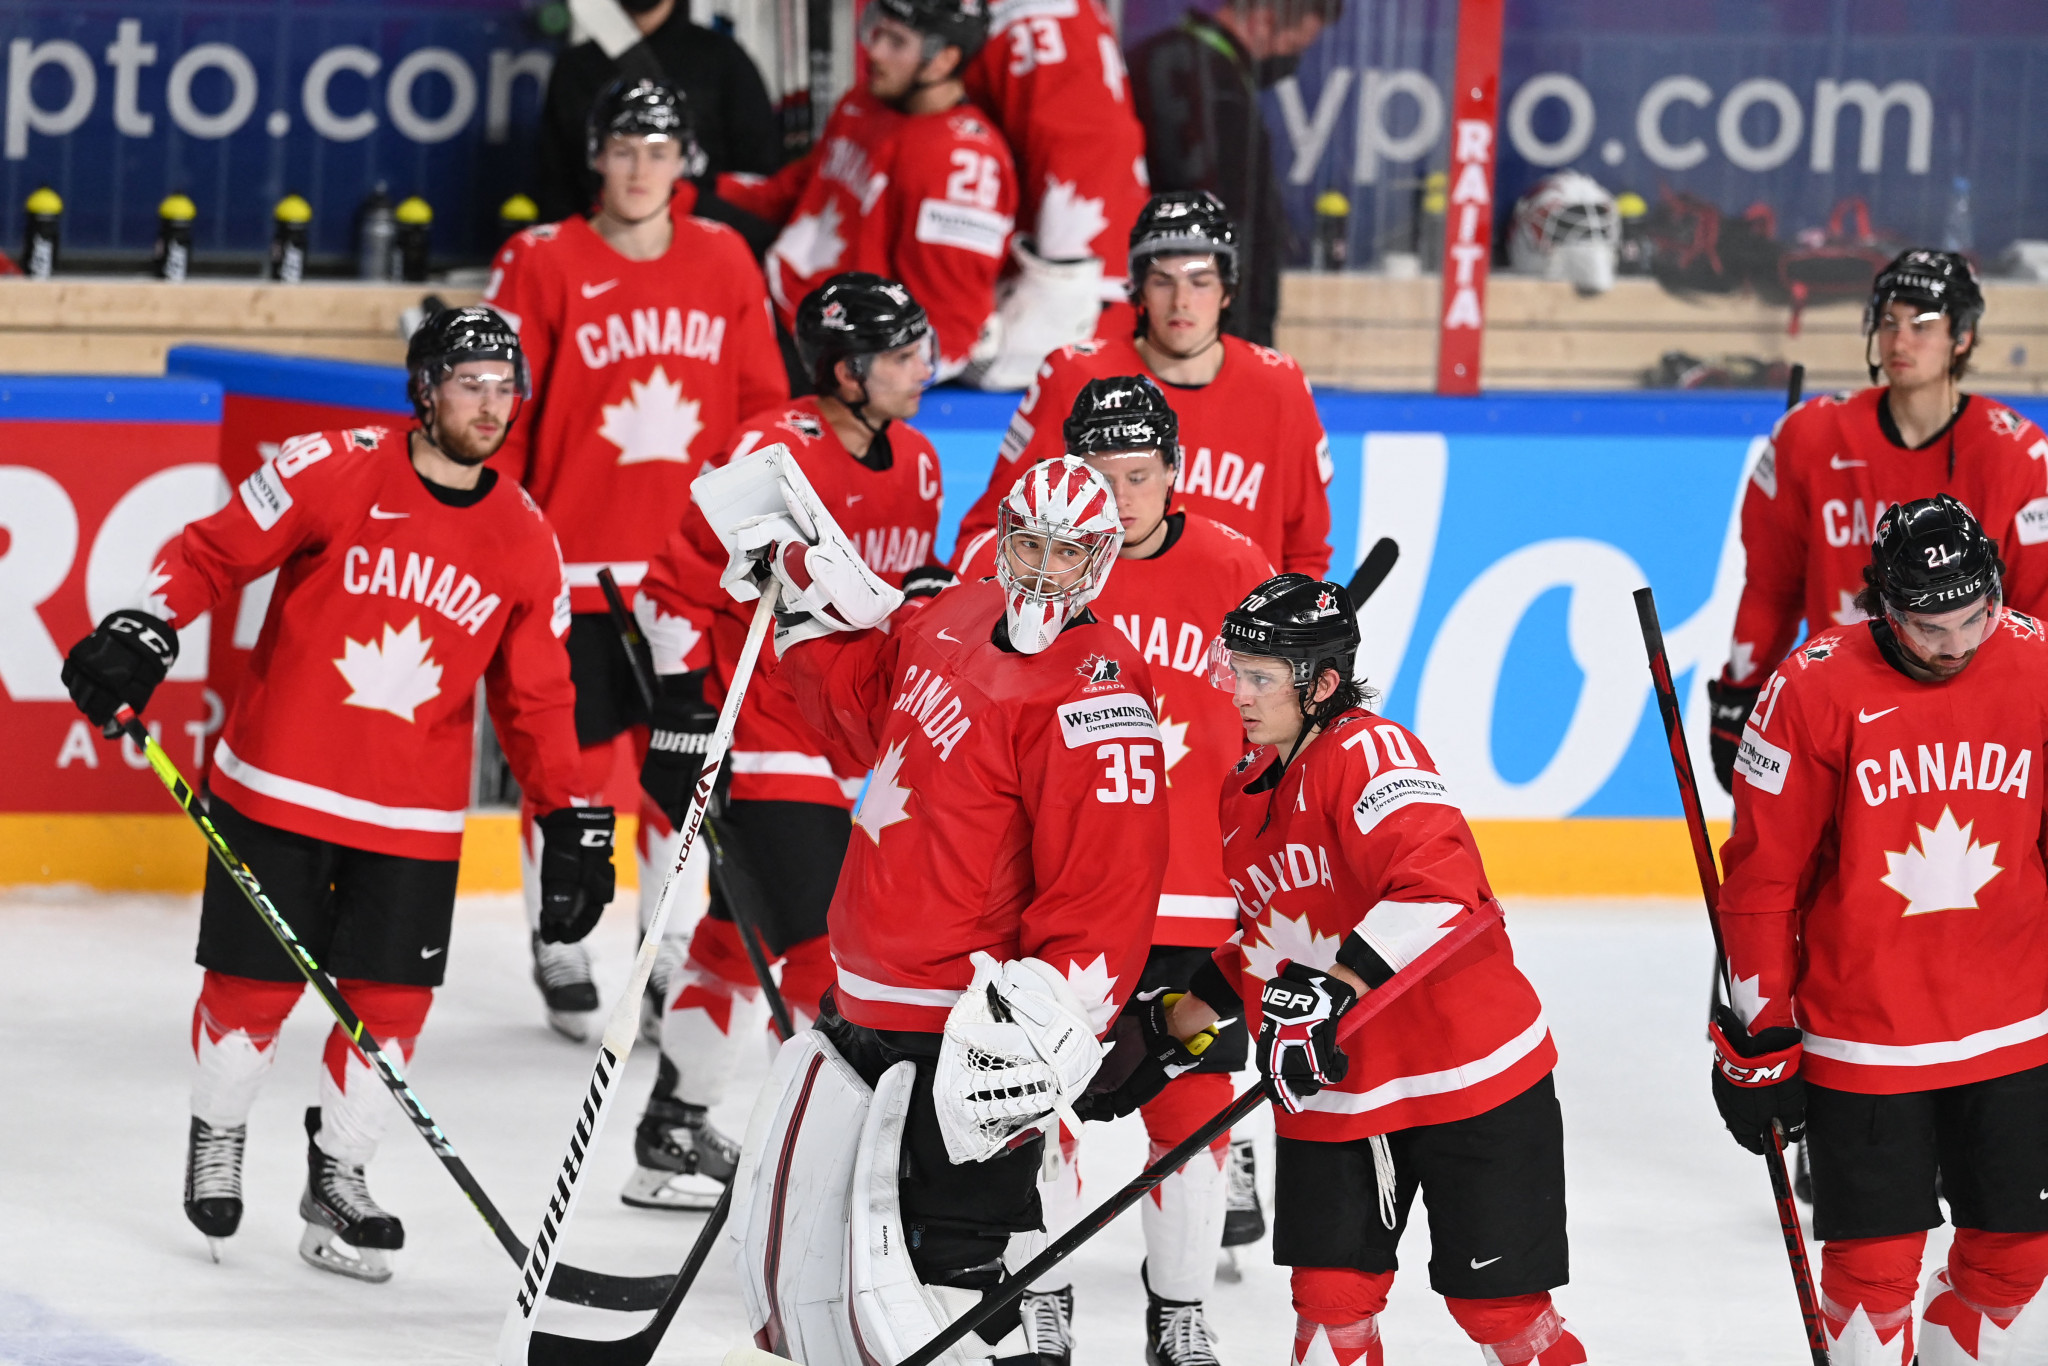 Canada and Germany through as hosts Latvia exit IIHF World Championship